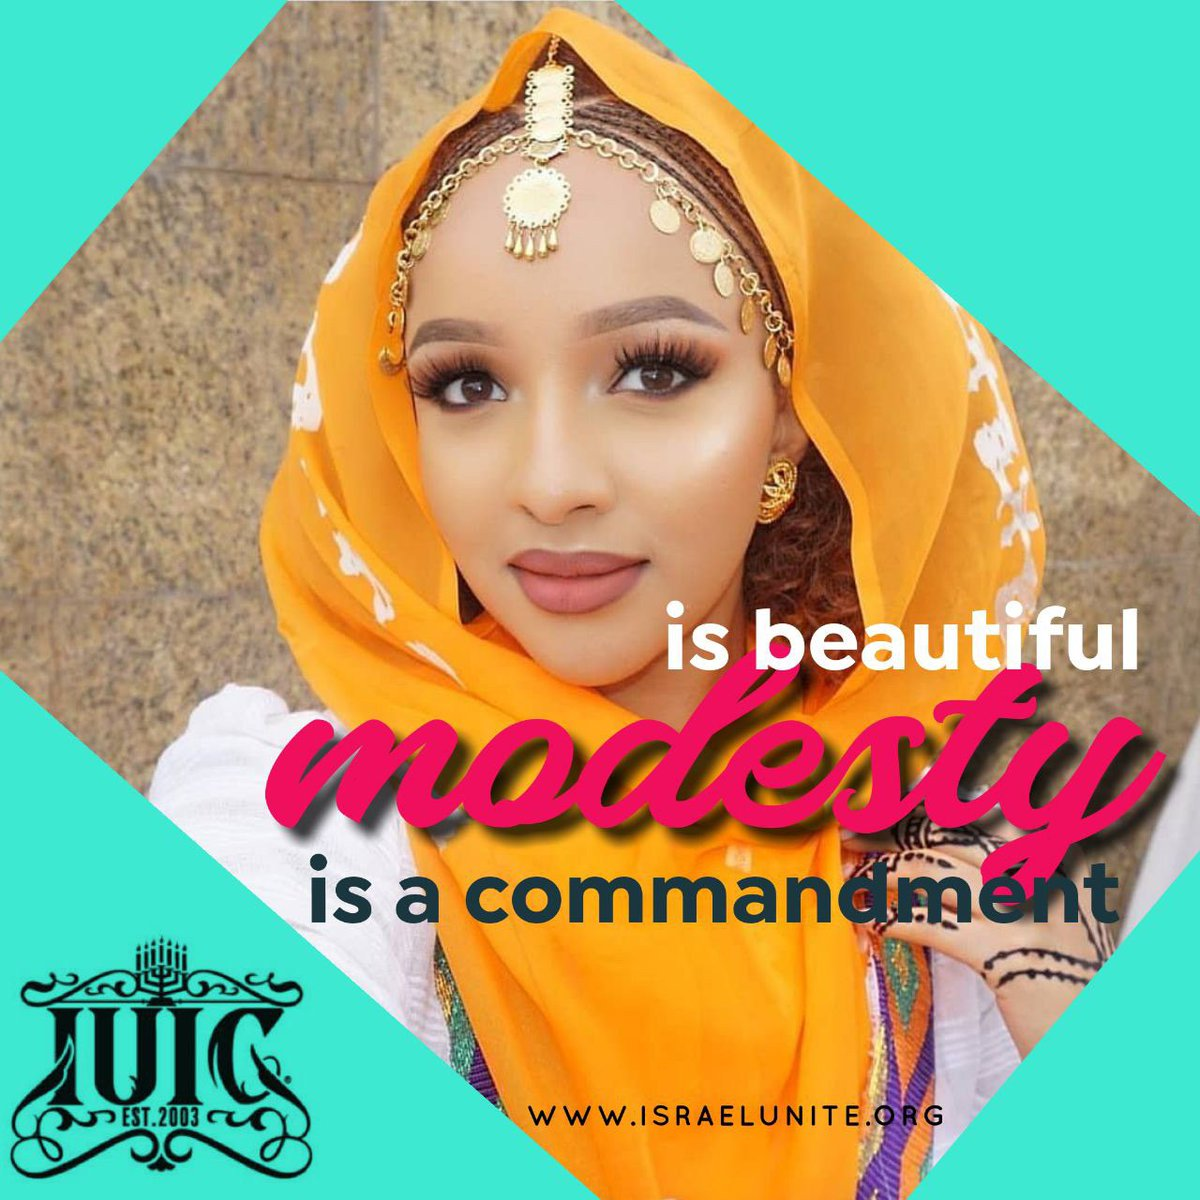 Let your modesty shine!!!   1 Timothy 2:9 [9]In like manner also, that women adorn themselves in modest apparel, with shamefacedness and sobriety; not with broided hair, or gold, or pearls, or costly array;  #Beautiful #Modesty #ModestApparel #Shamefaced #KeeptheCommandmentspic.twitter.com/wksSLCOCdk